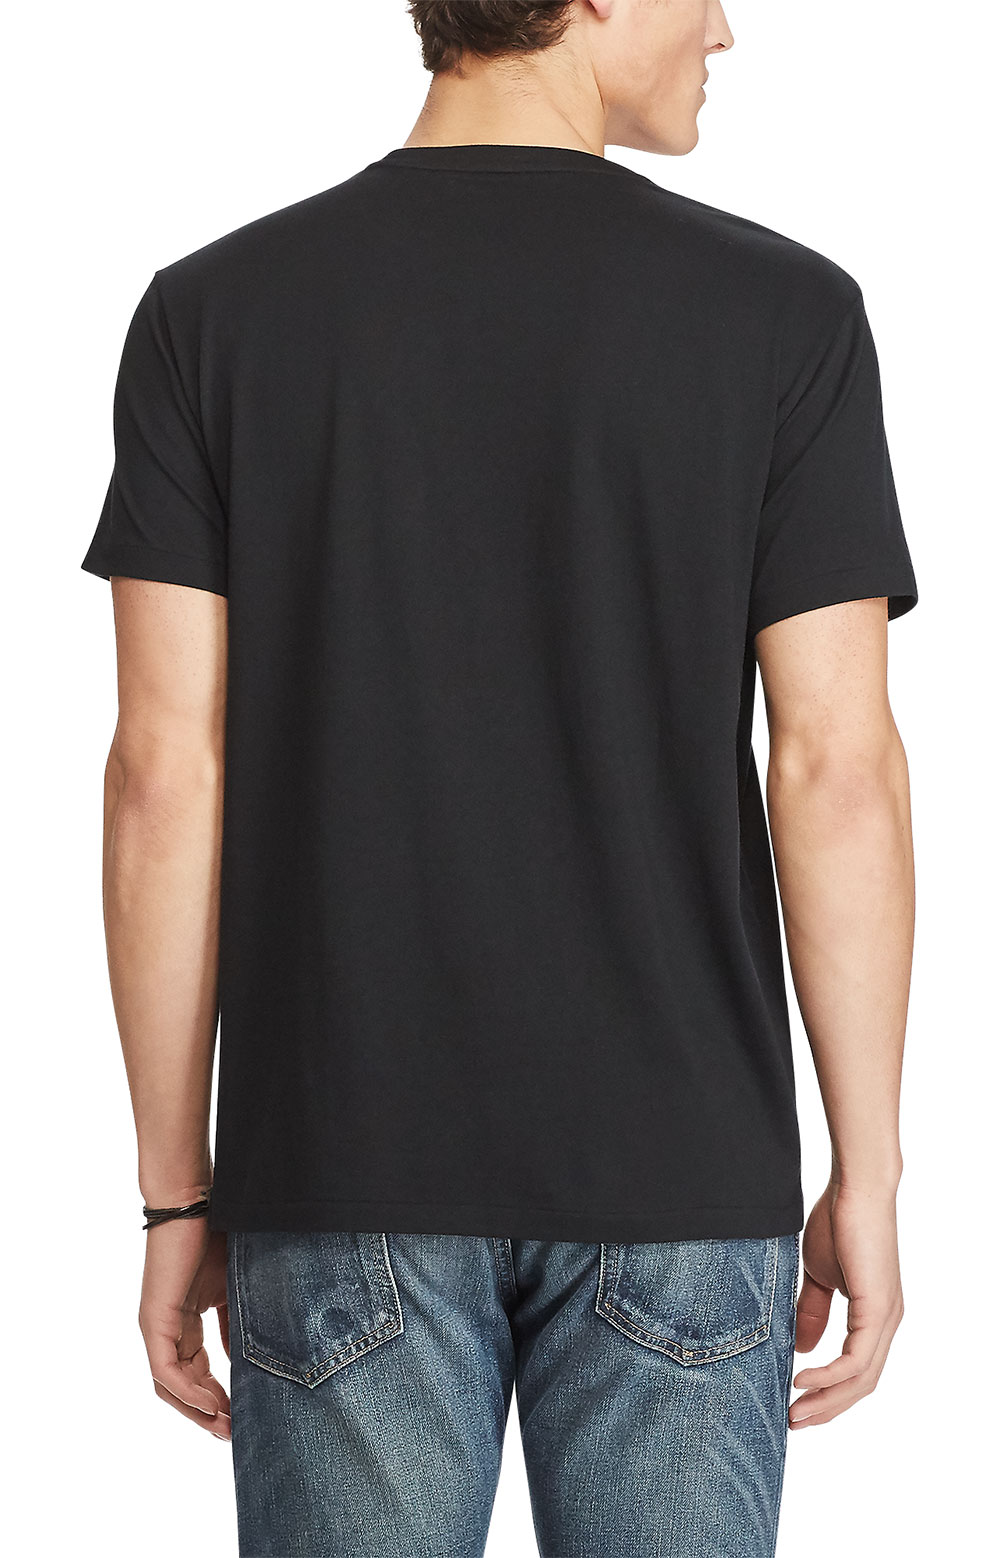 Active Fit Cotton T-Shirt - Black 2